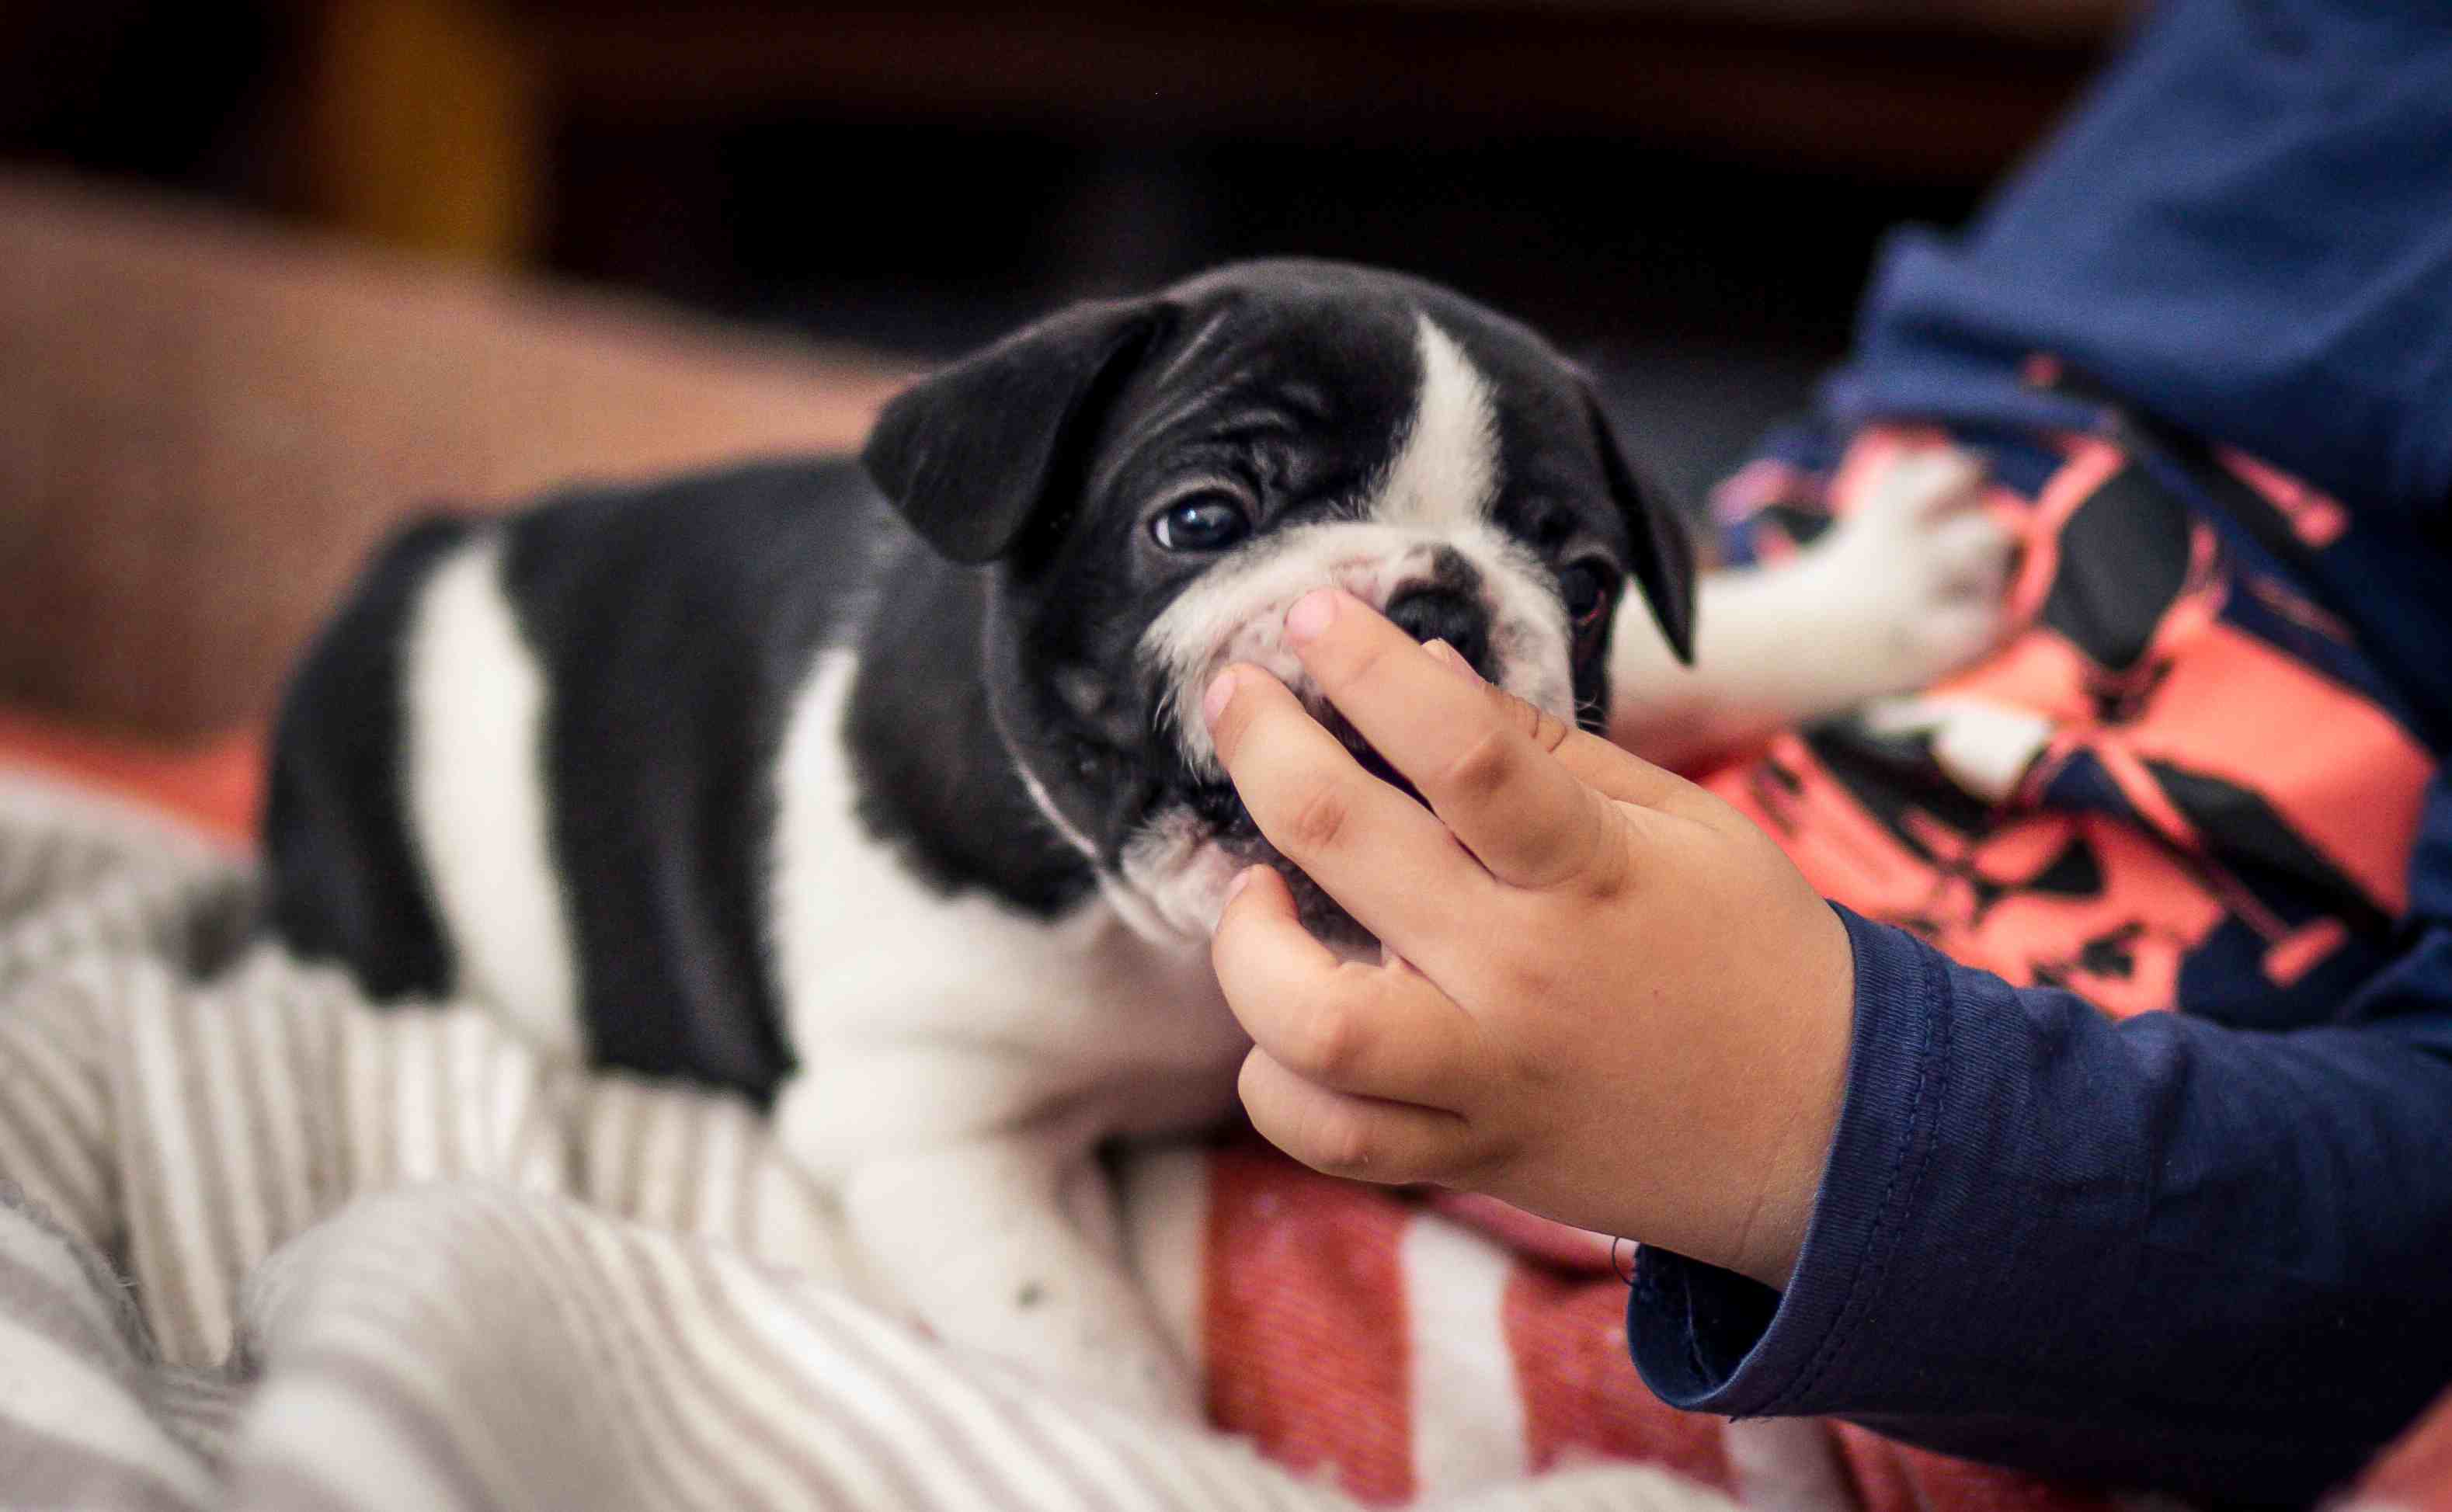 Puppy Chewing Young Boy's Fingers